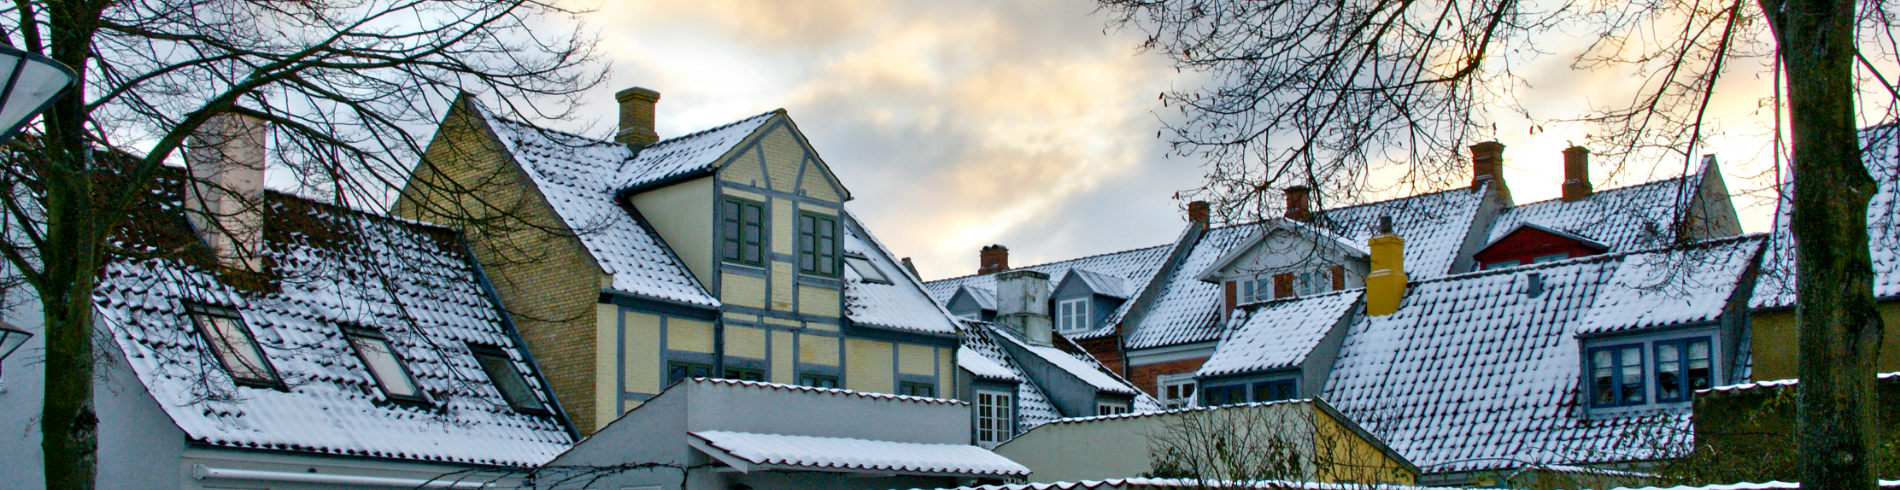 VisitOdense cover image